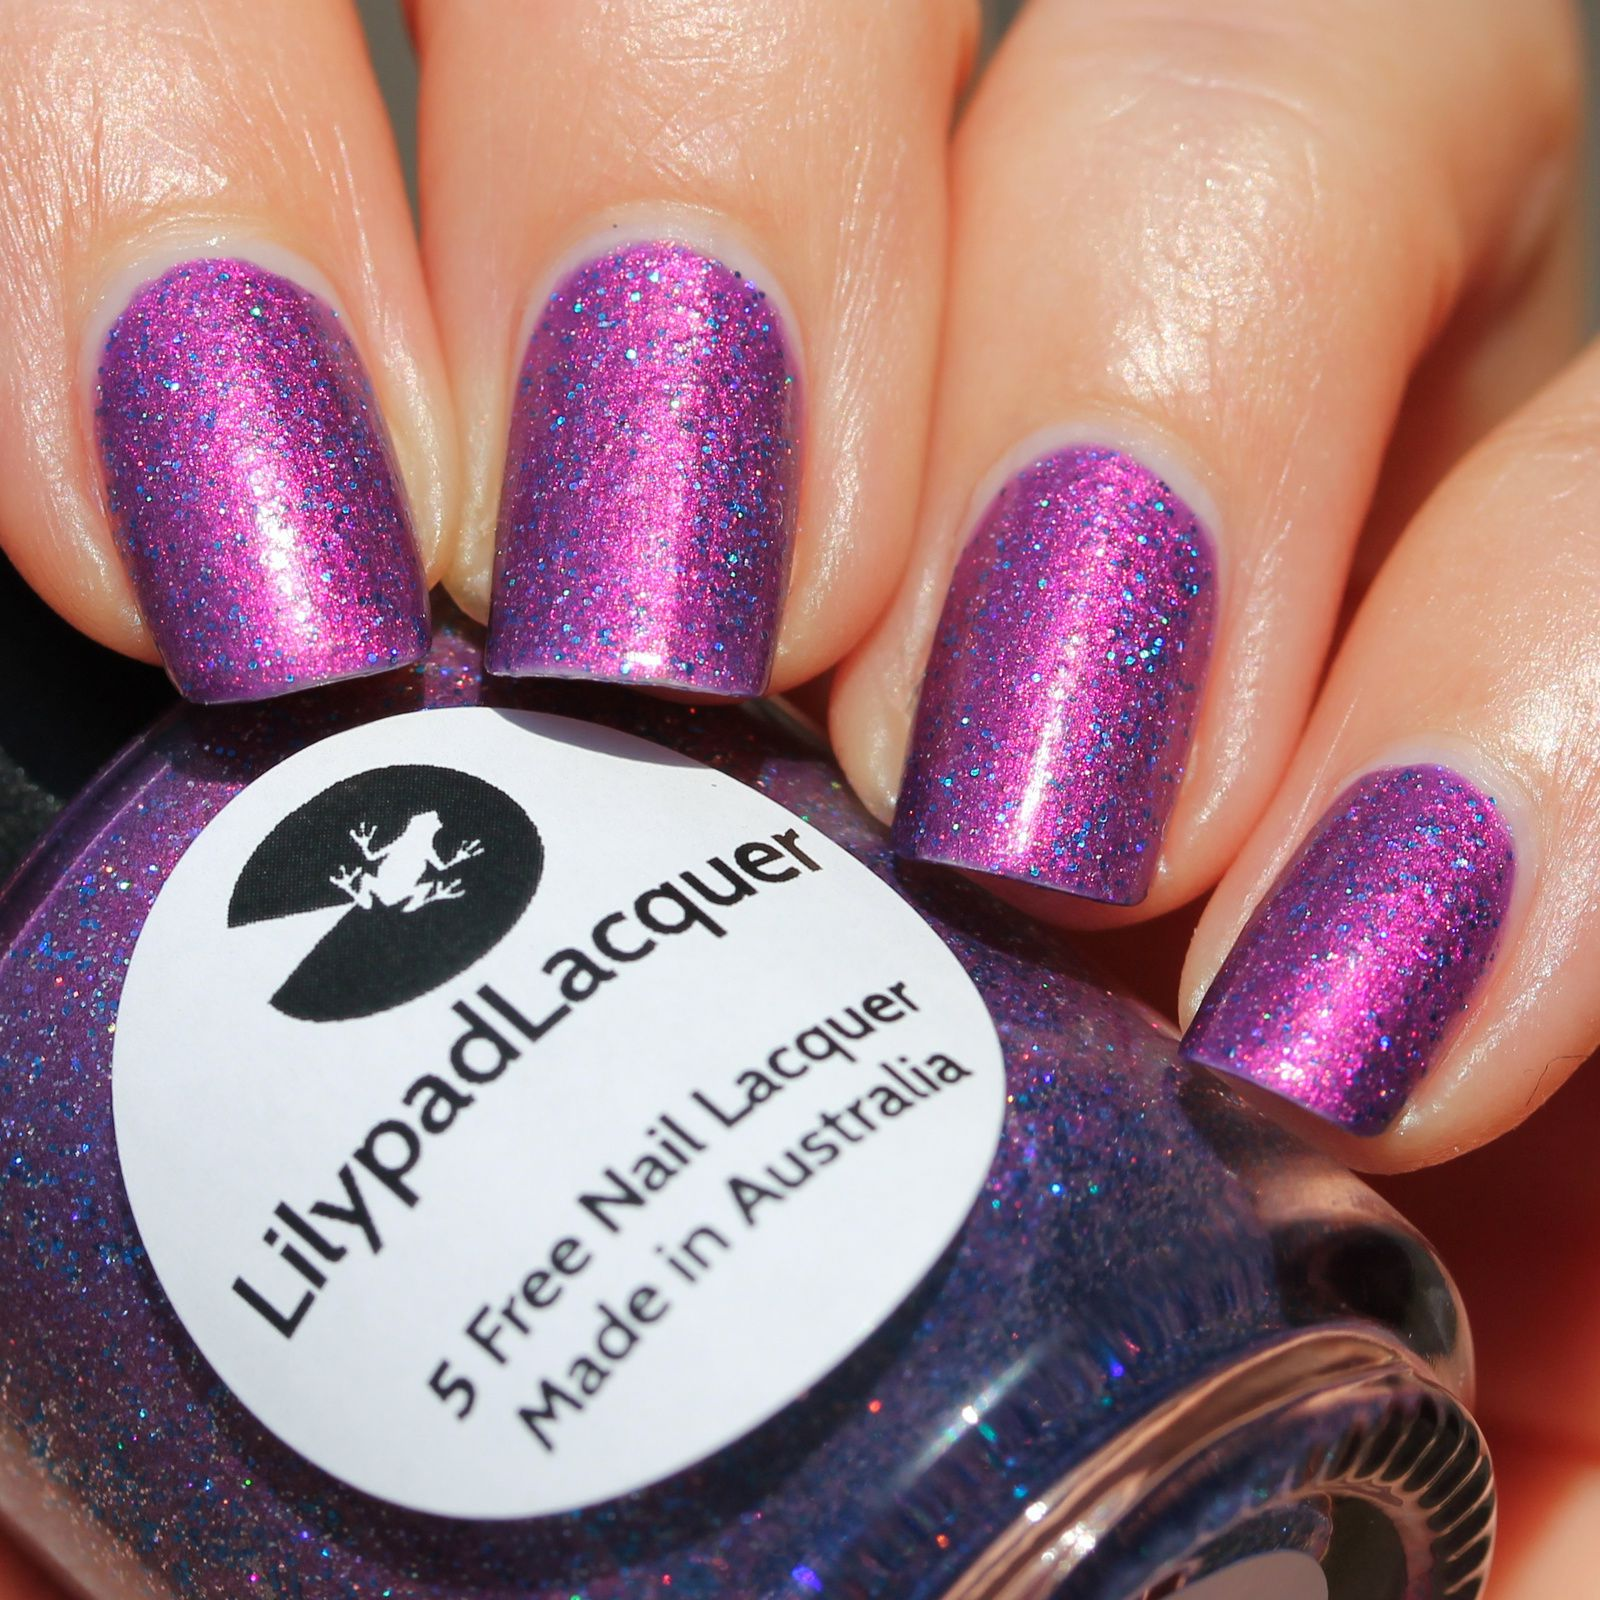 Duri Rejuvacote / Lilypad Lacquer Whimsical / Sally Hansen Miracle Gel Top Coat